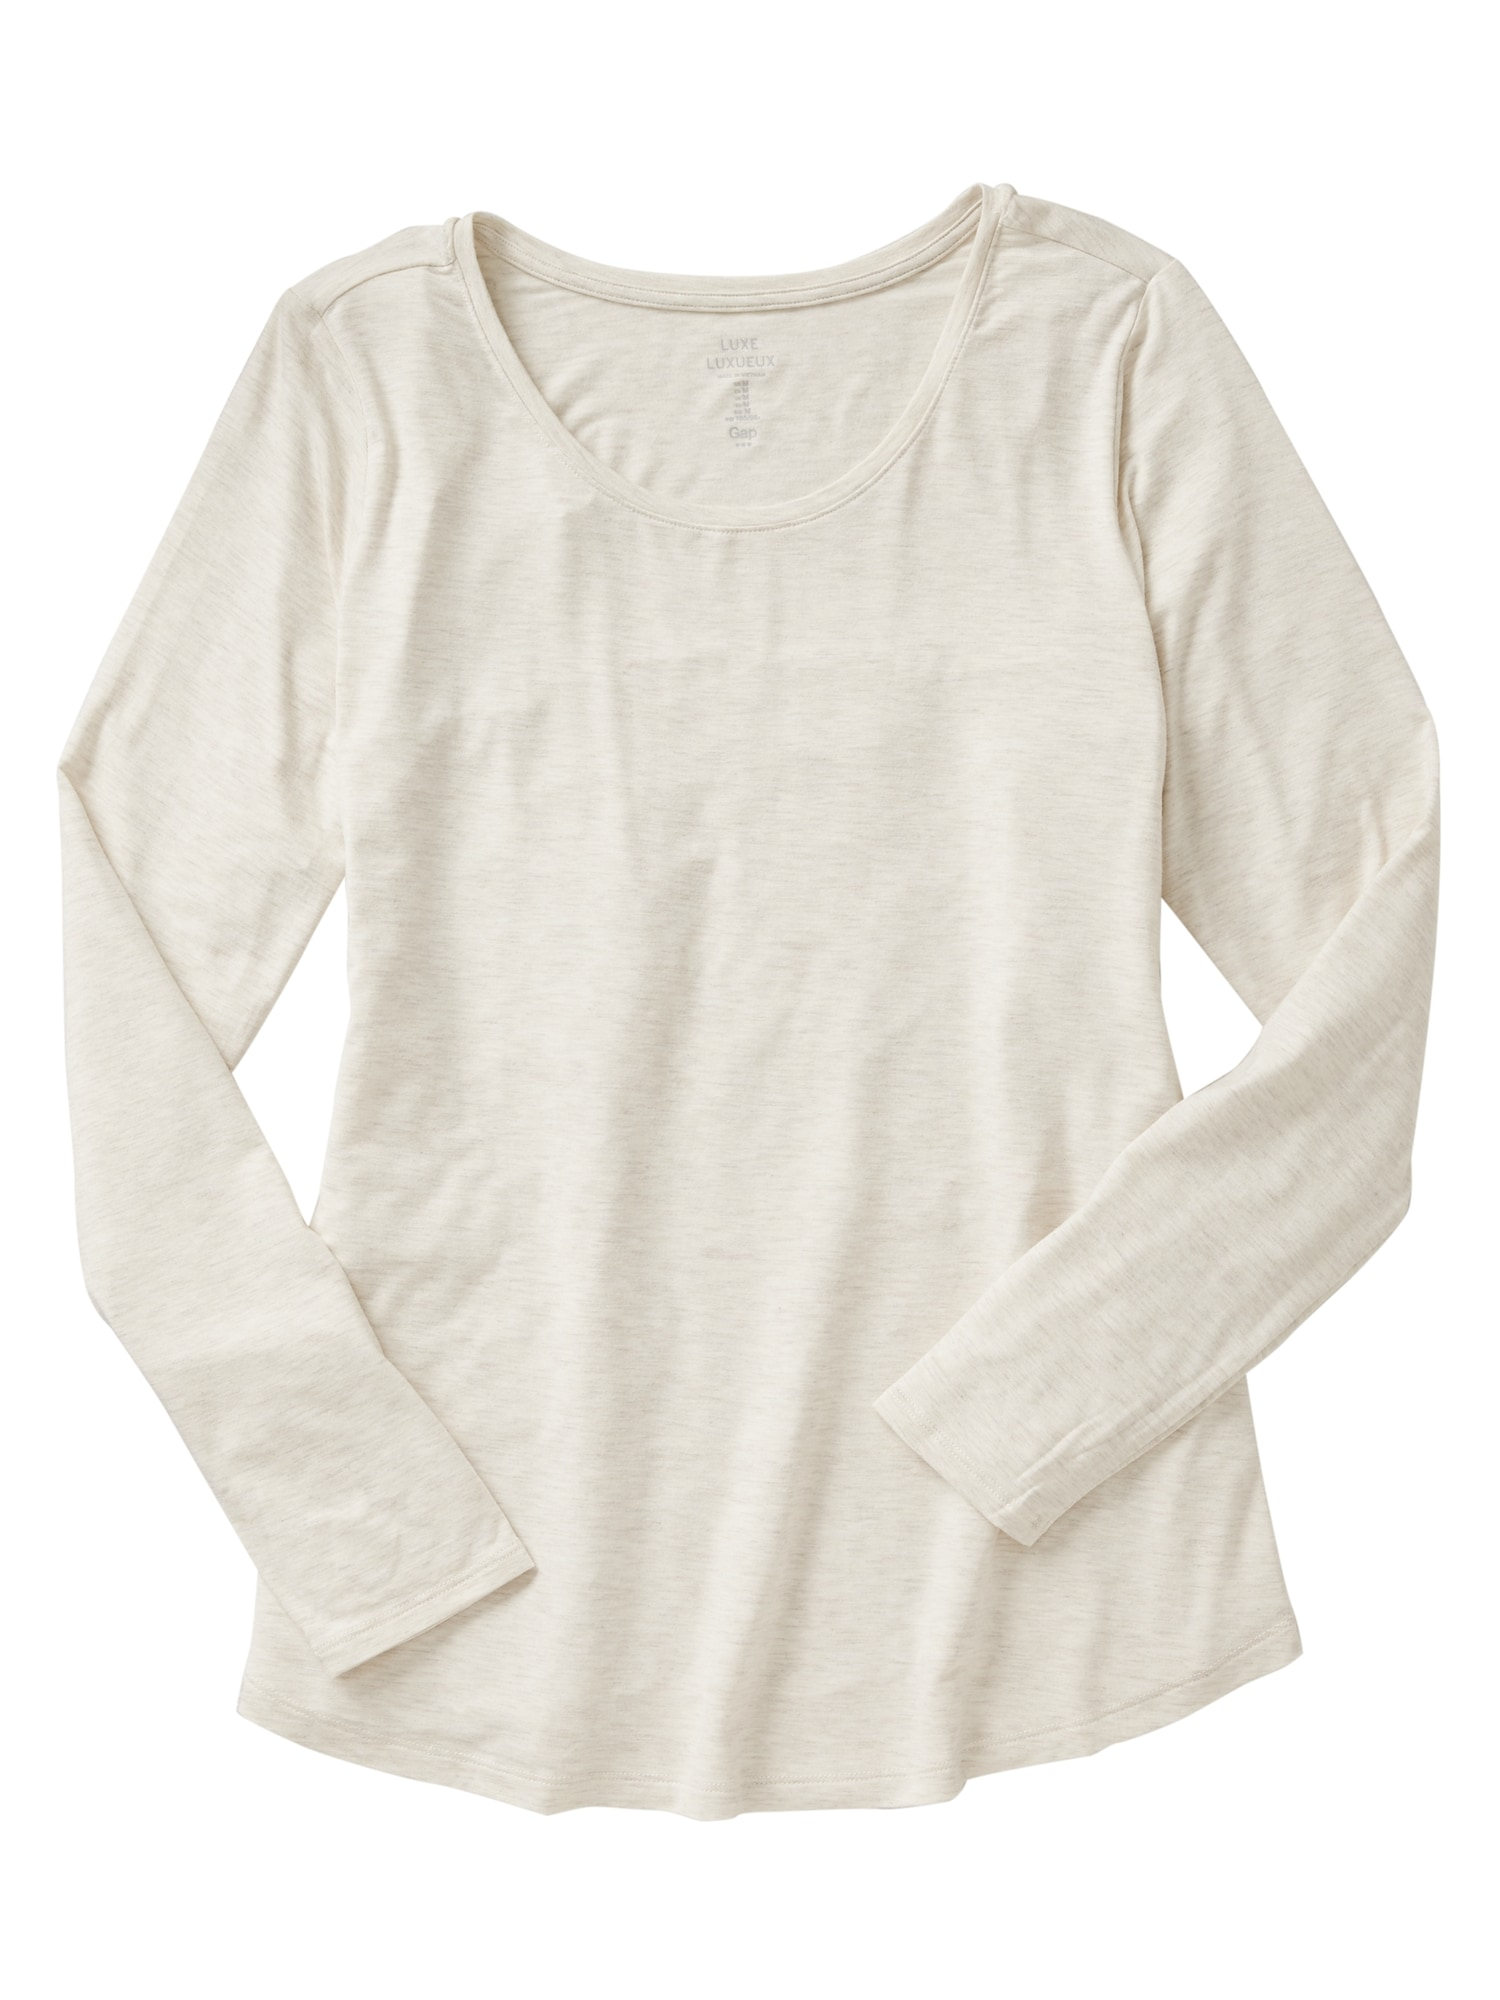 tanger outlets gap cream scoop neck long sleeve tee